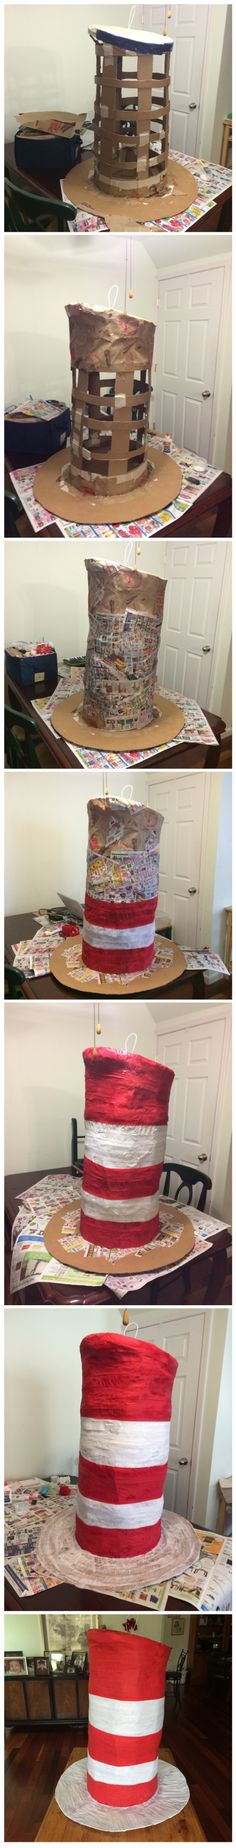 The Cat in The hat Piñata.